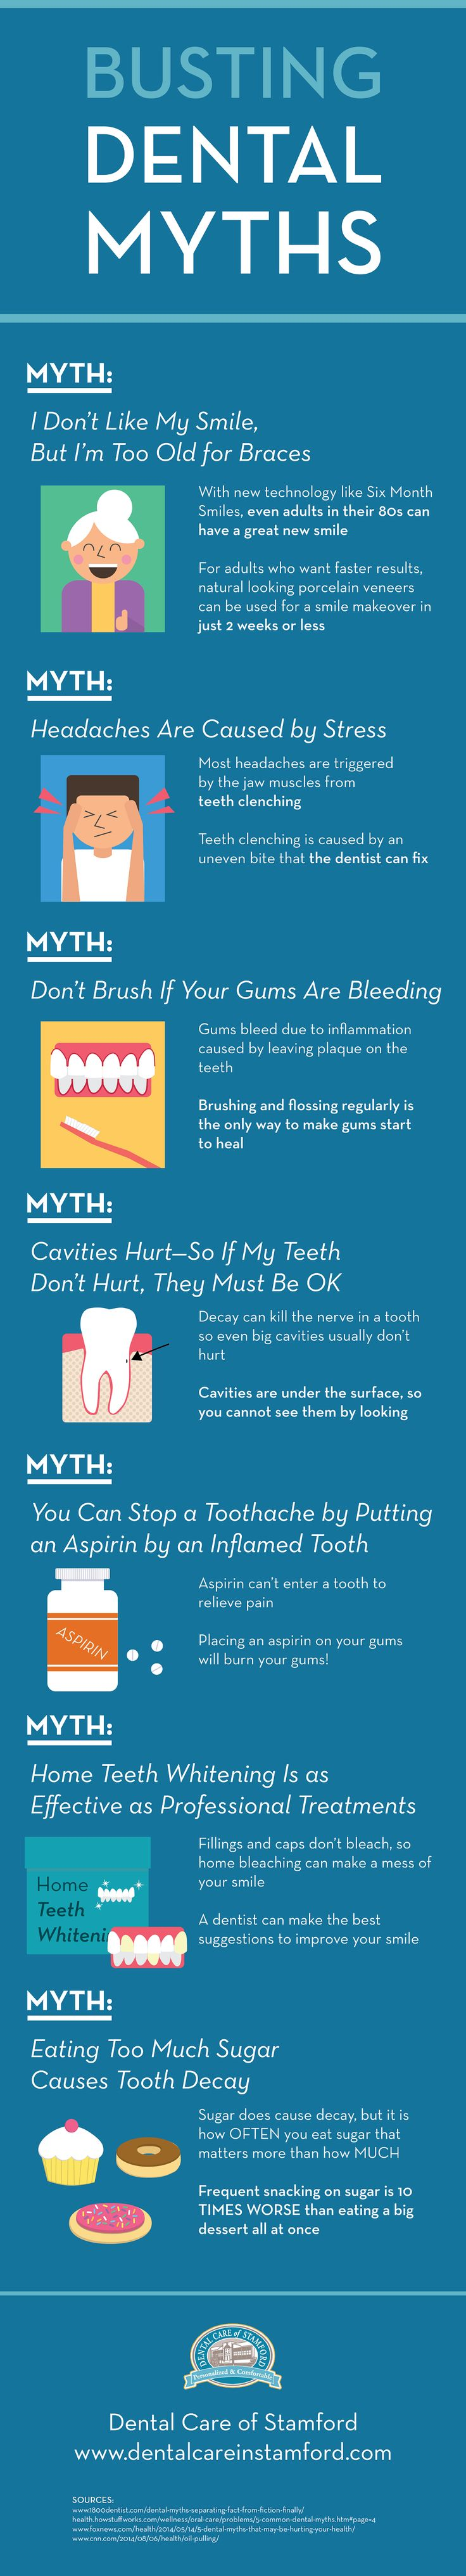 What's causing your headaches? A lot of people think stress is to blame, but most headaches are actually triggered by the jaw muscles from teeth clenching! View this Stamford dental surgery infographic to see other common dental myths.